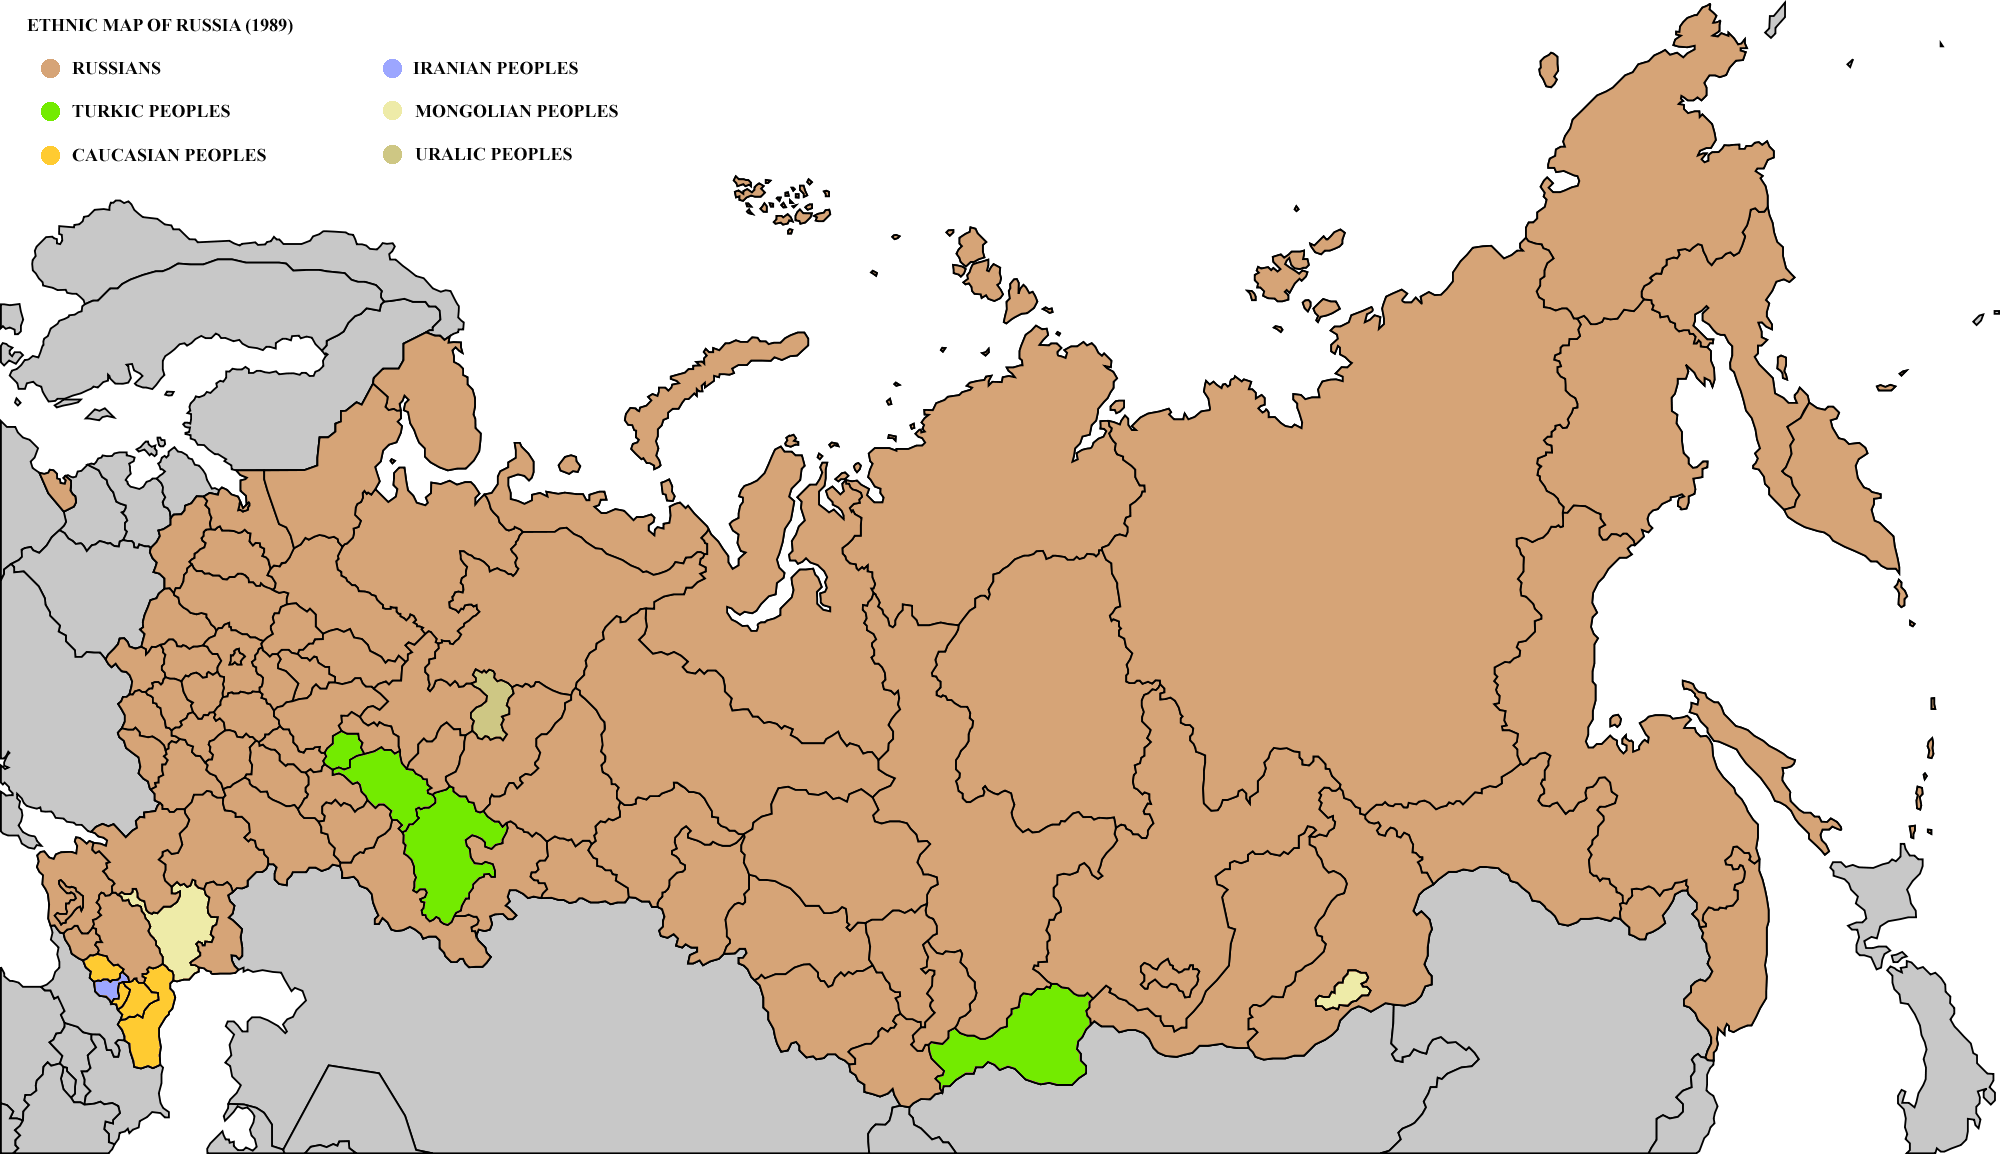 file ethnic map of russia 1989 png wikimedia commons